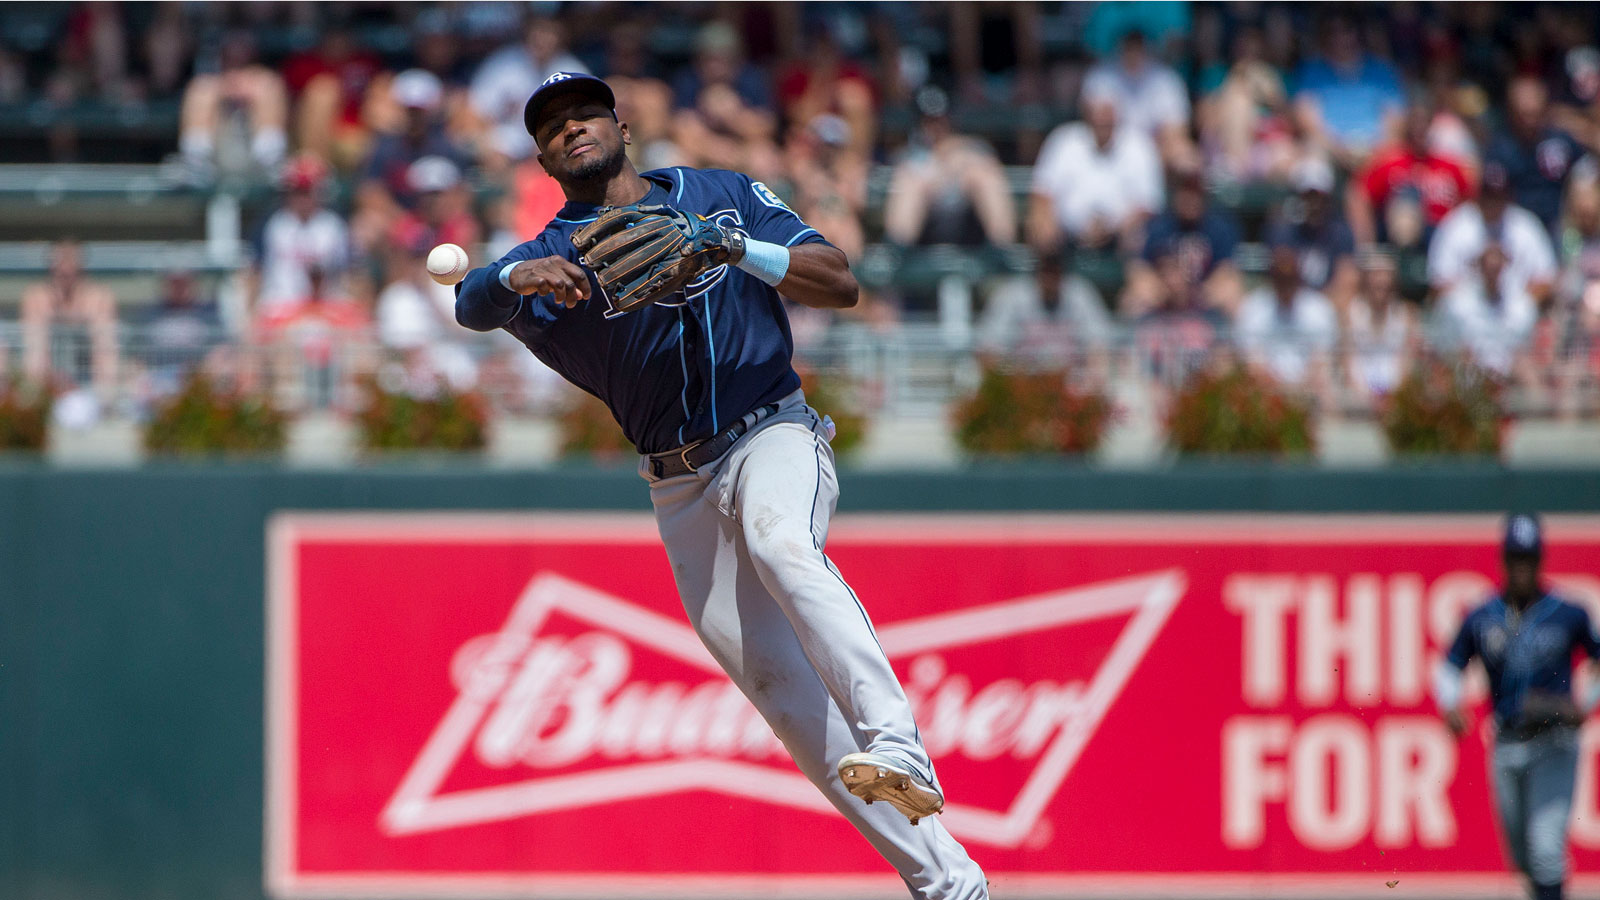 Rays designate shortstop Adeiny Hechavarria for assignment to open roster spot for Tommy Pham